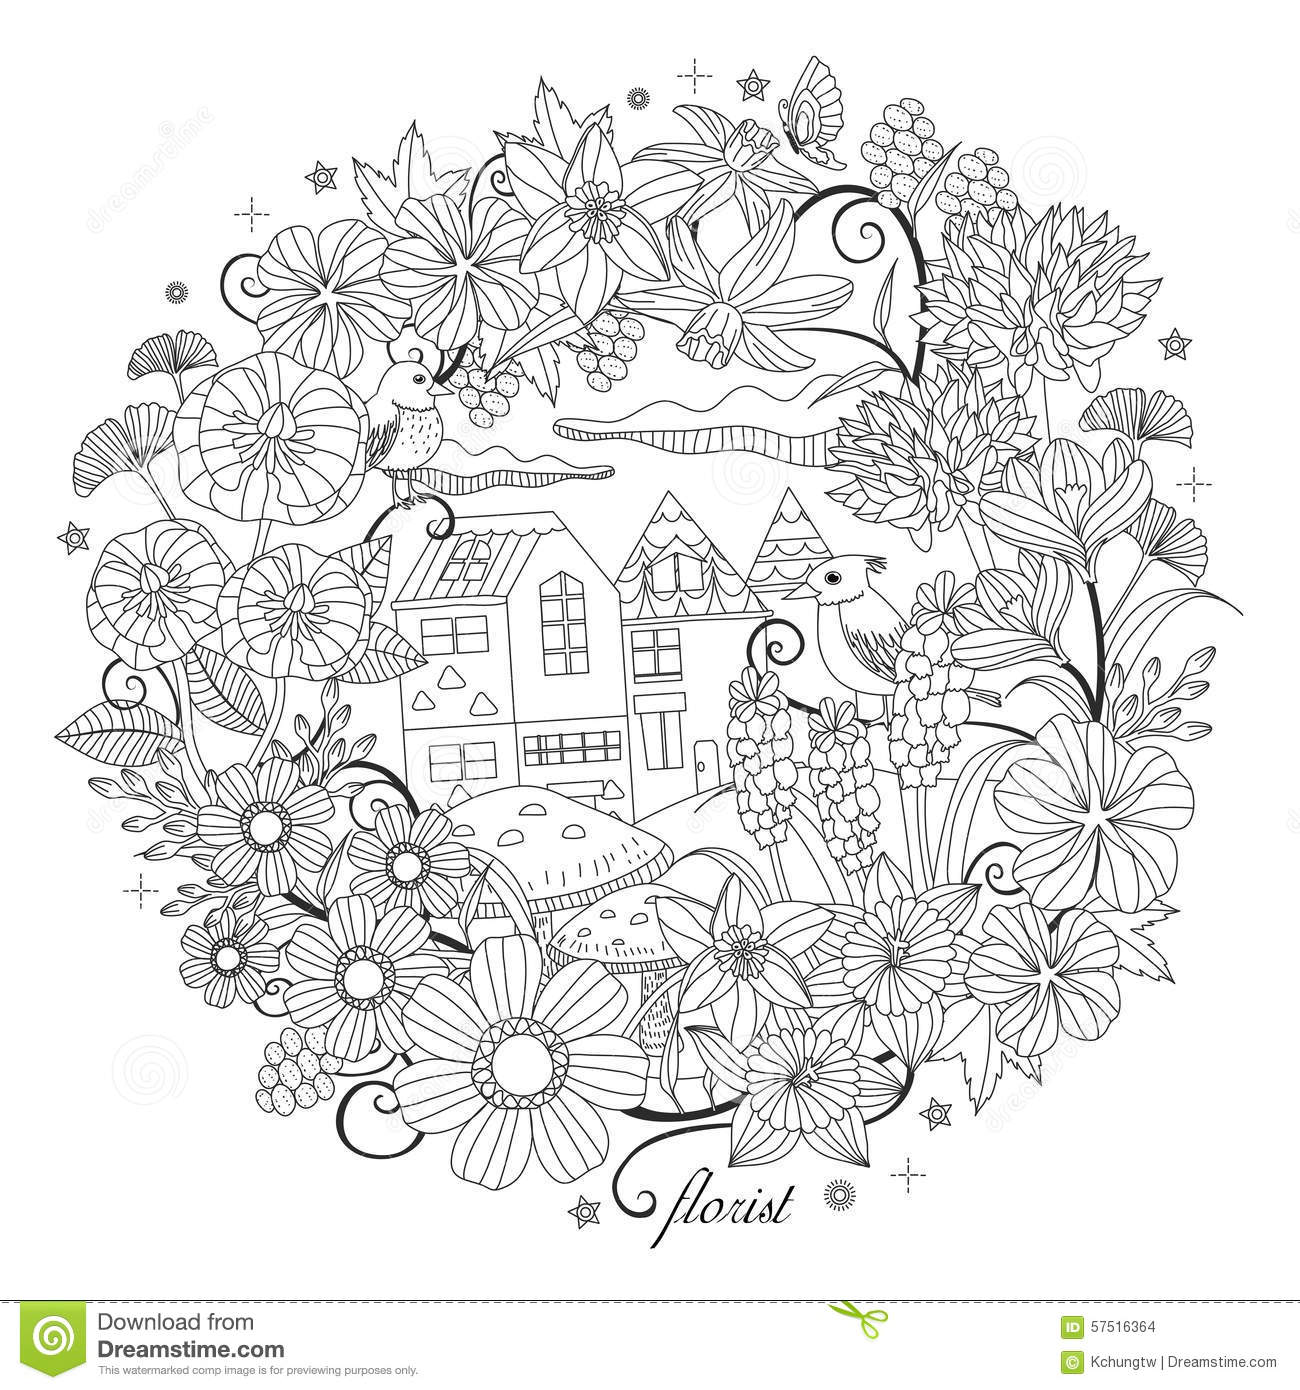 fantastic garden scenery black white pattern coloring book adults 57516364 in addition nature scenery colouring pages 1 on nature scenery colouring pages along with nature scenery colouring pages 2 on nature scenery colouring pages furthermore nature scenery colouring pages 3 on nature scenery colouring pages furthermore nature scenery colouring pages 4 on nature scenery colouring pages